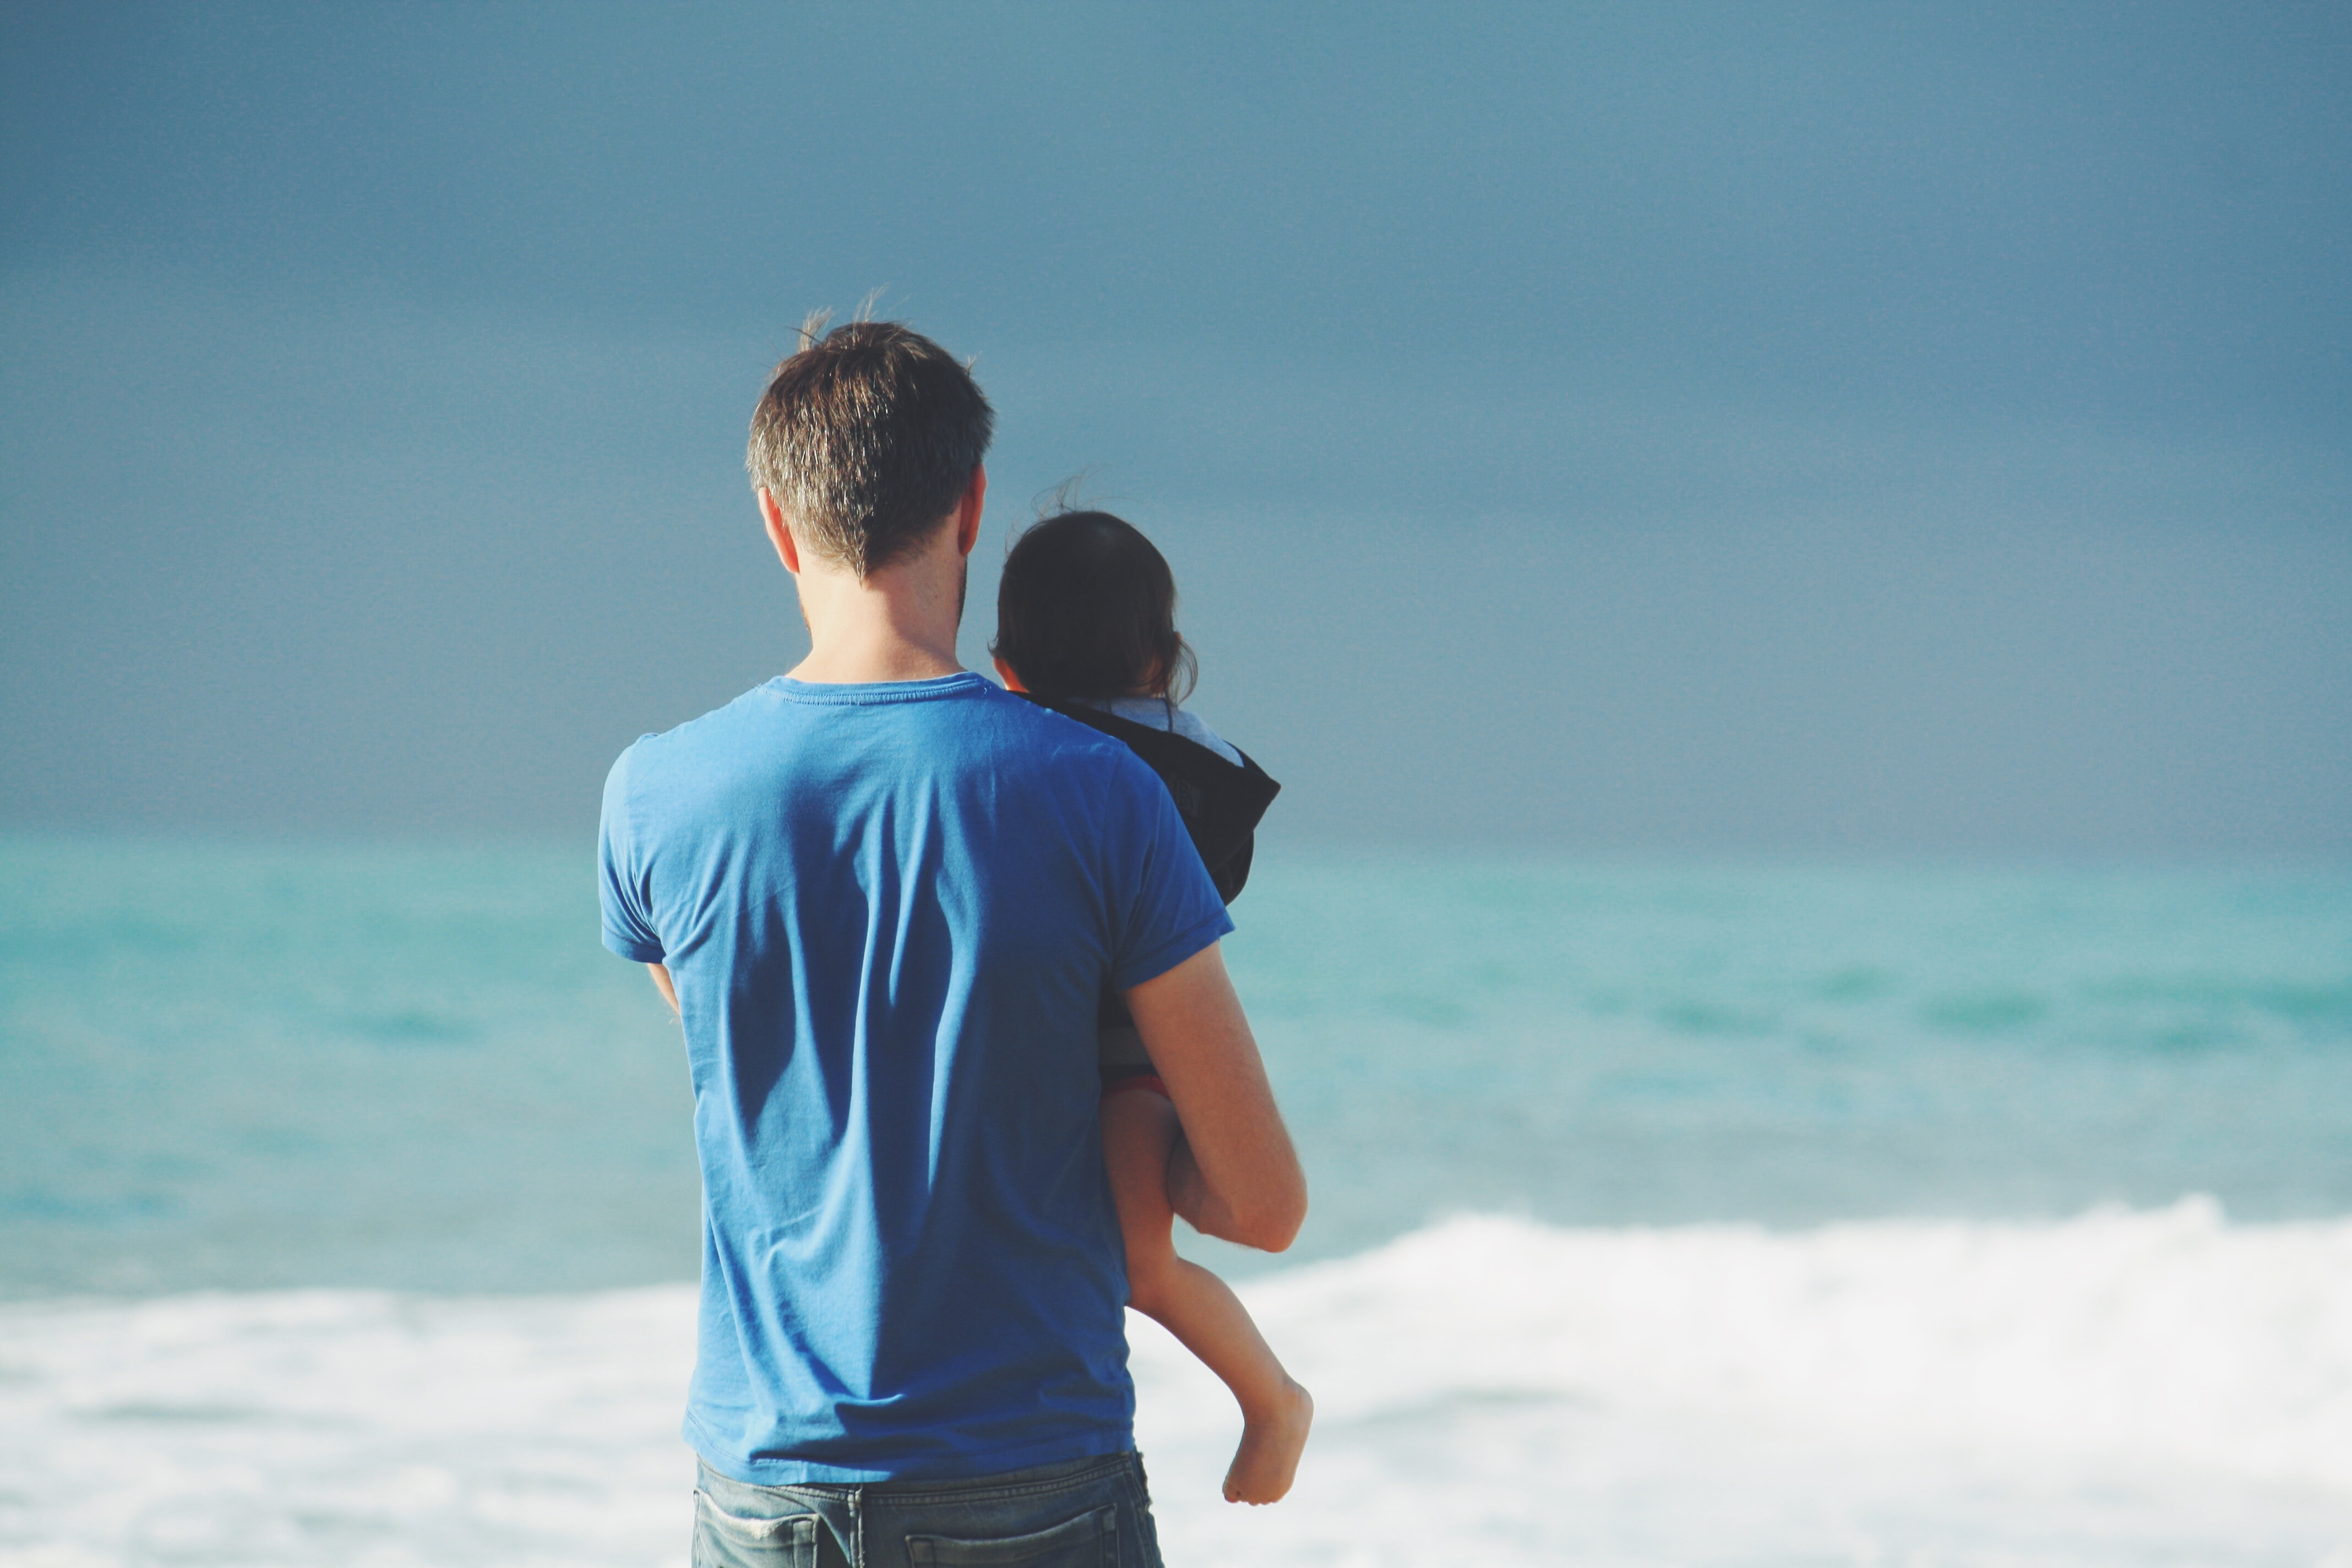 man wears blue crew-neck t-shirt holding toddler wears black hooded jacket near ocean under blue sky at daytime